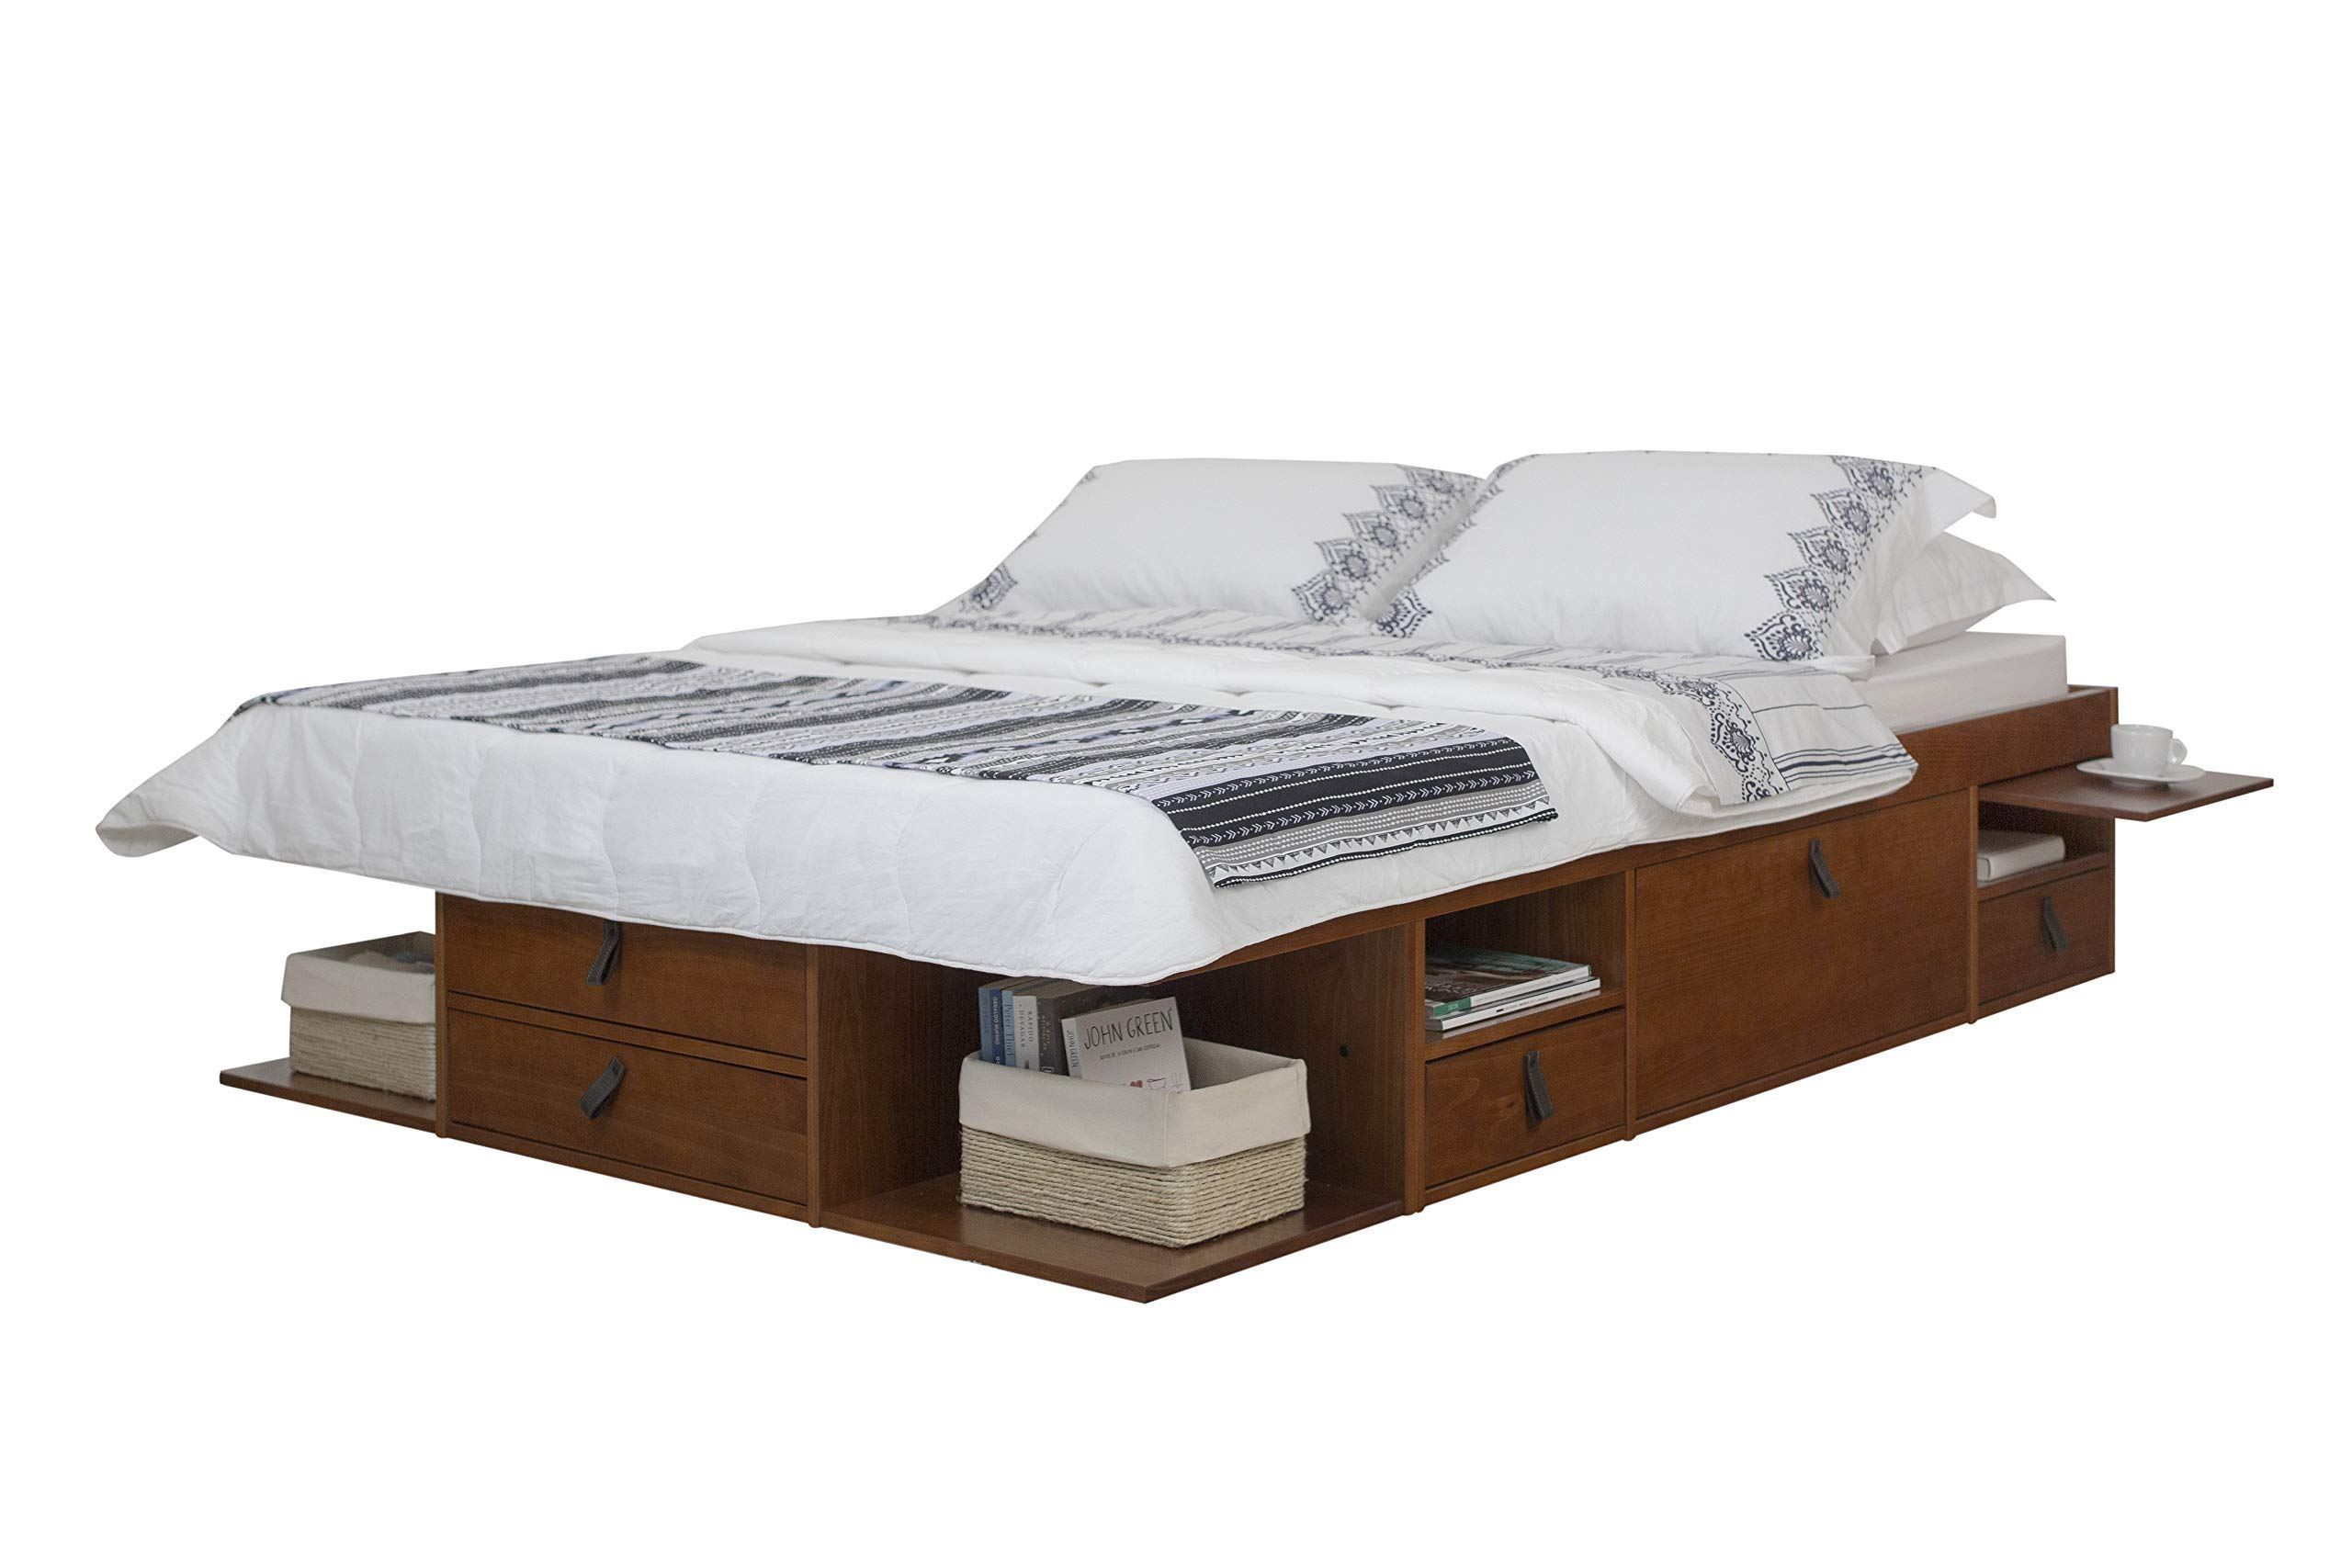 Memomad Bali Storage Platform Bed with Drawers (Queen Size, Caramel) by Memomad